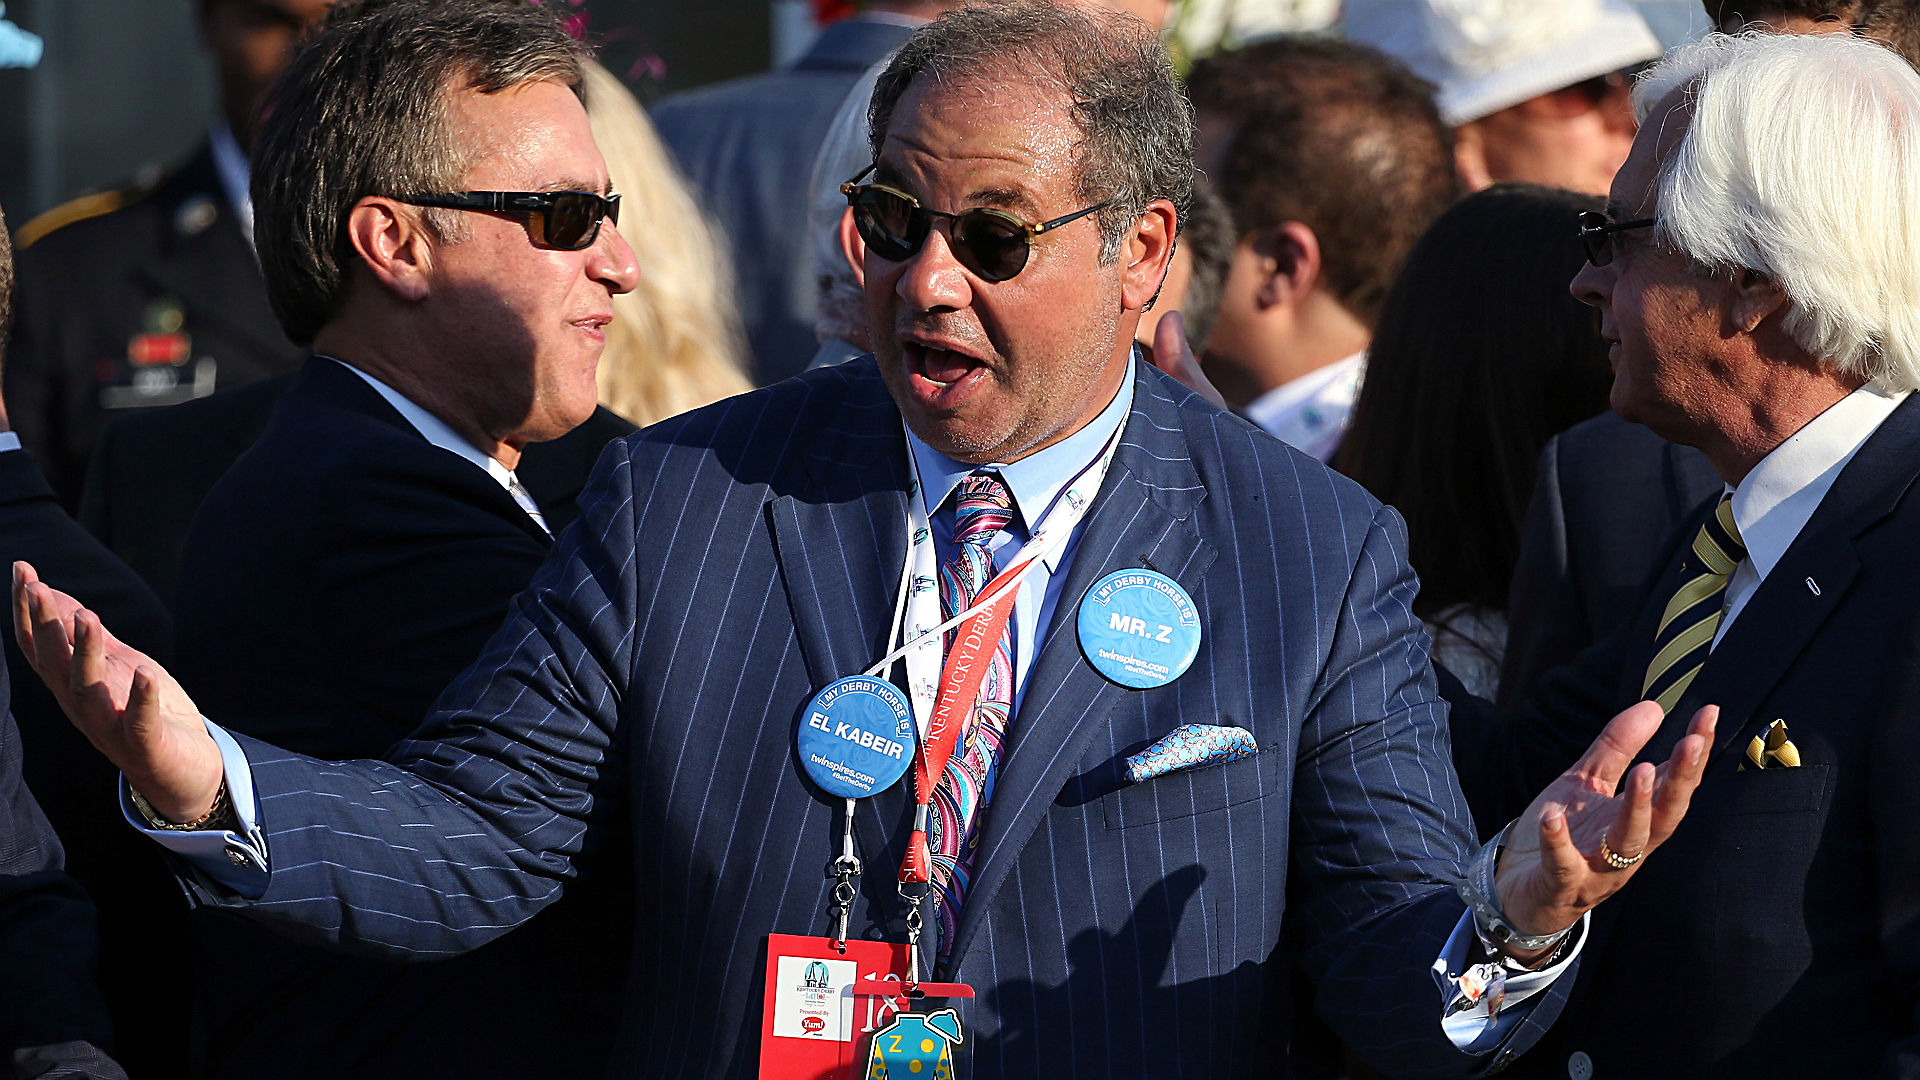 American Pharoah owner ducking $1.65 million gambling debt, accuser says